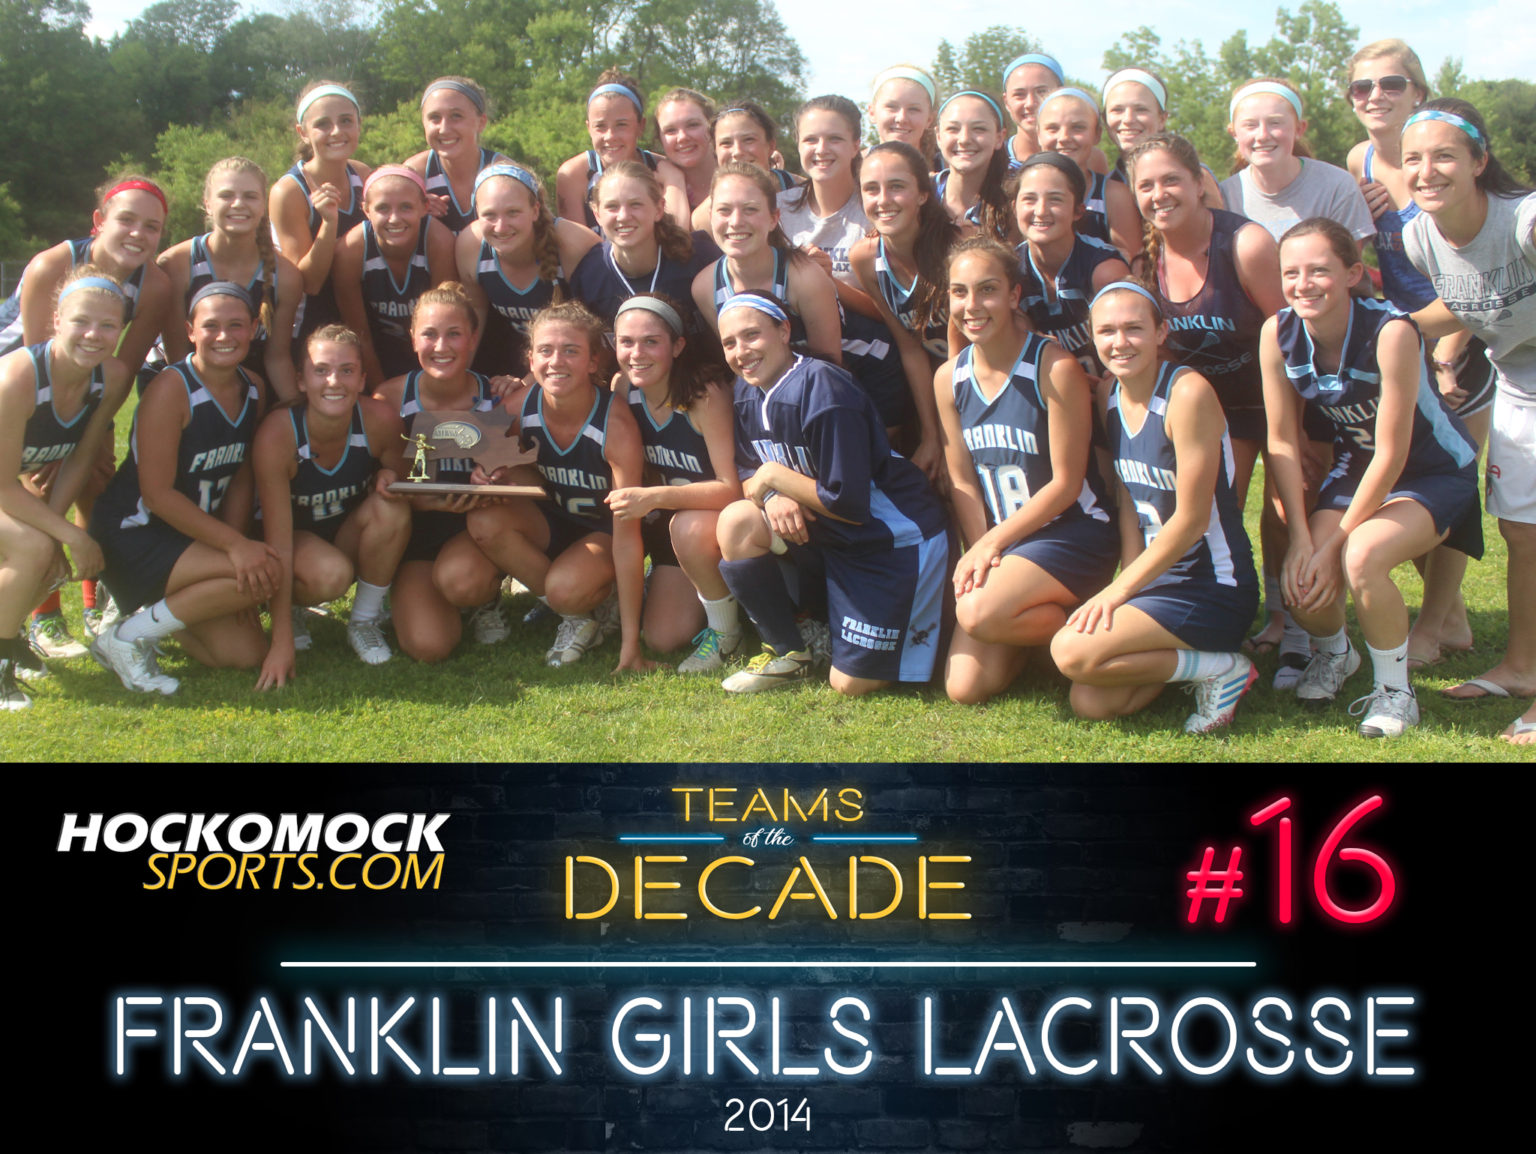 HockomockSports.com: Teams of the Decade #16: 2014 Franklin Girls Lacrosse